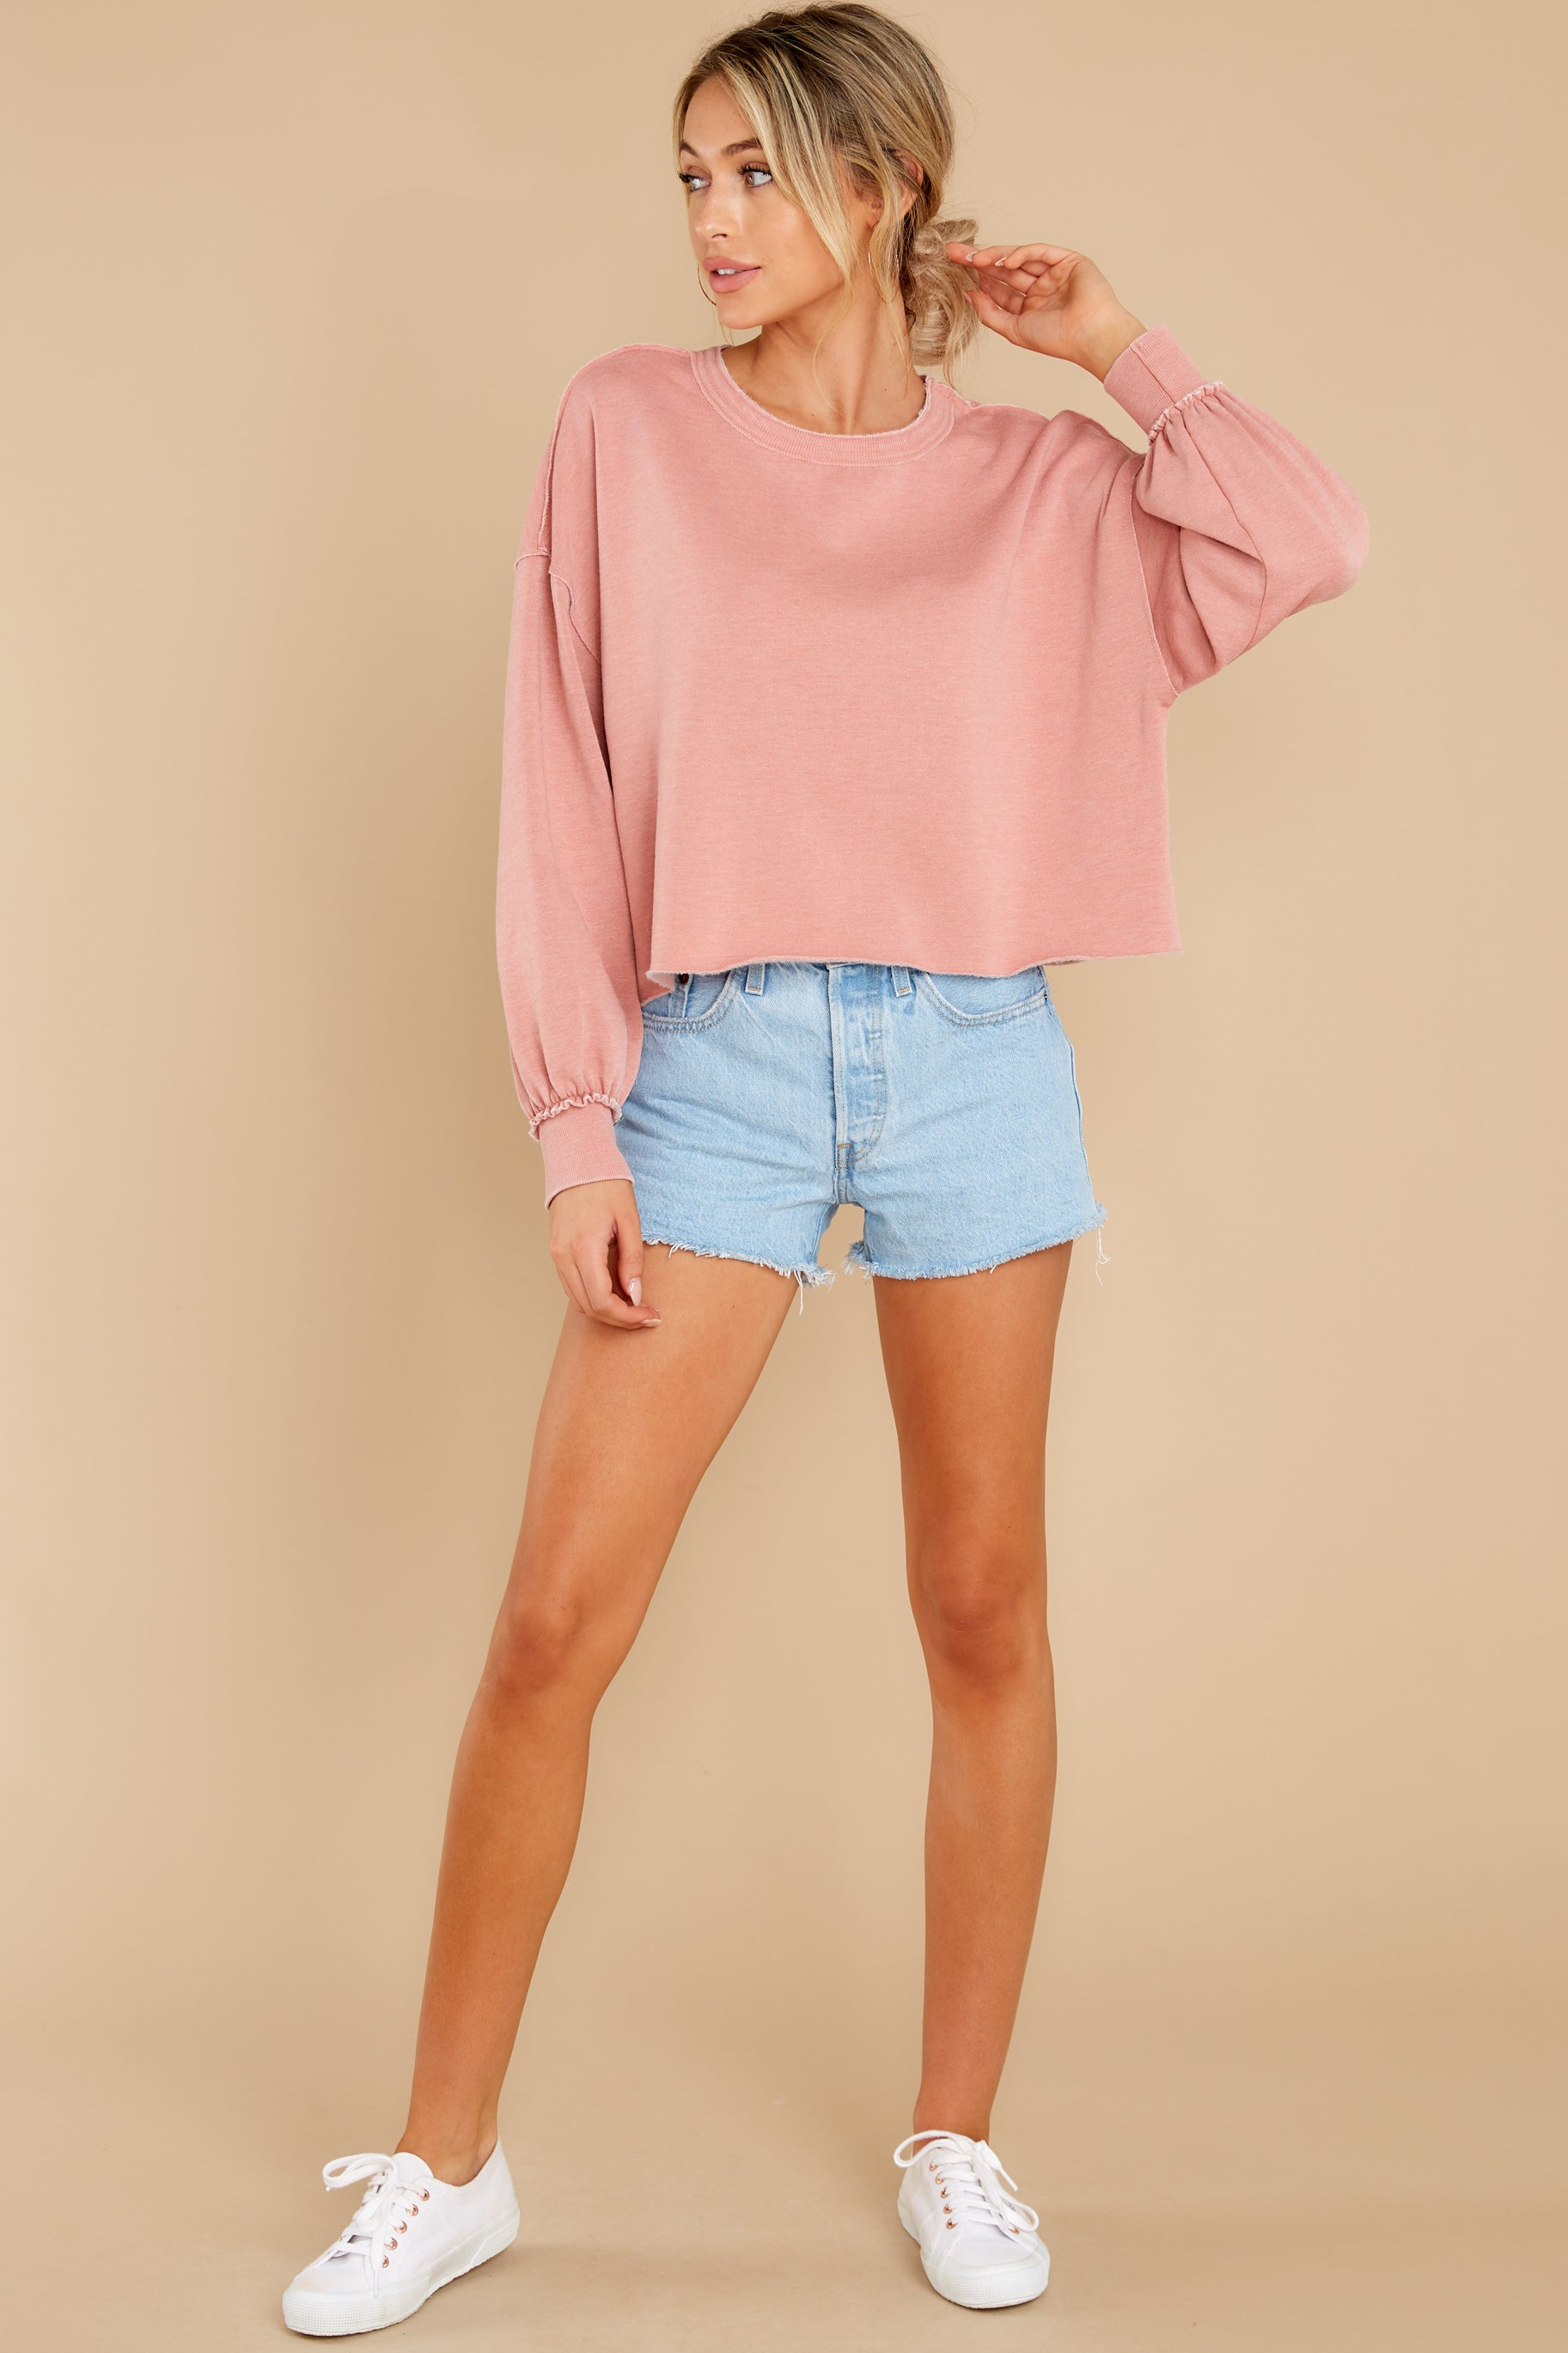 4 Tempest Petal Pink Sweatshirt at reddress.com